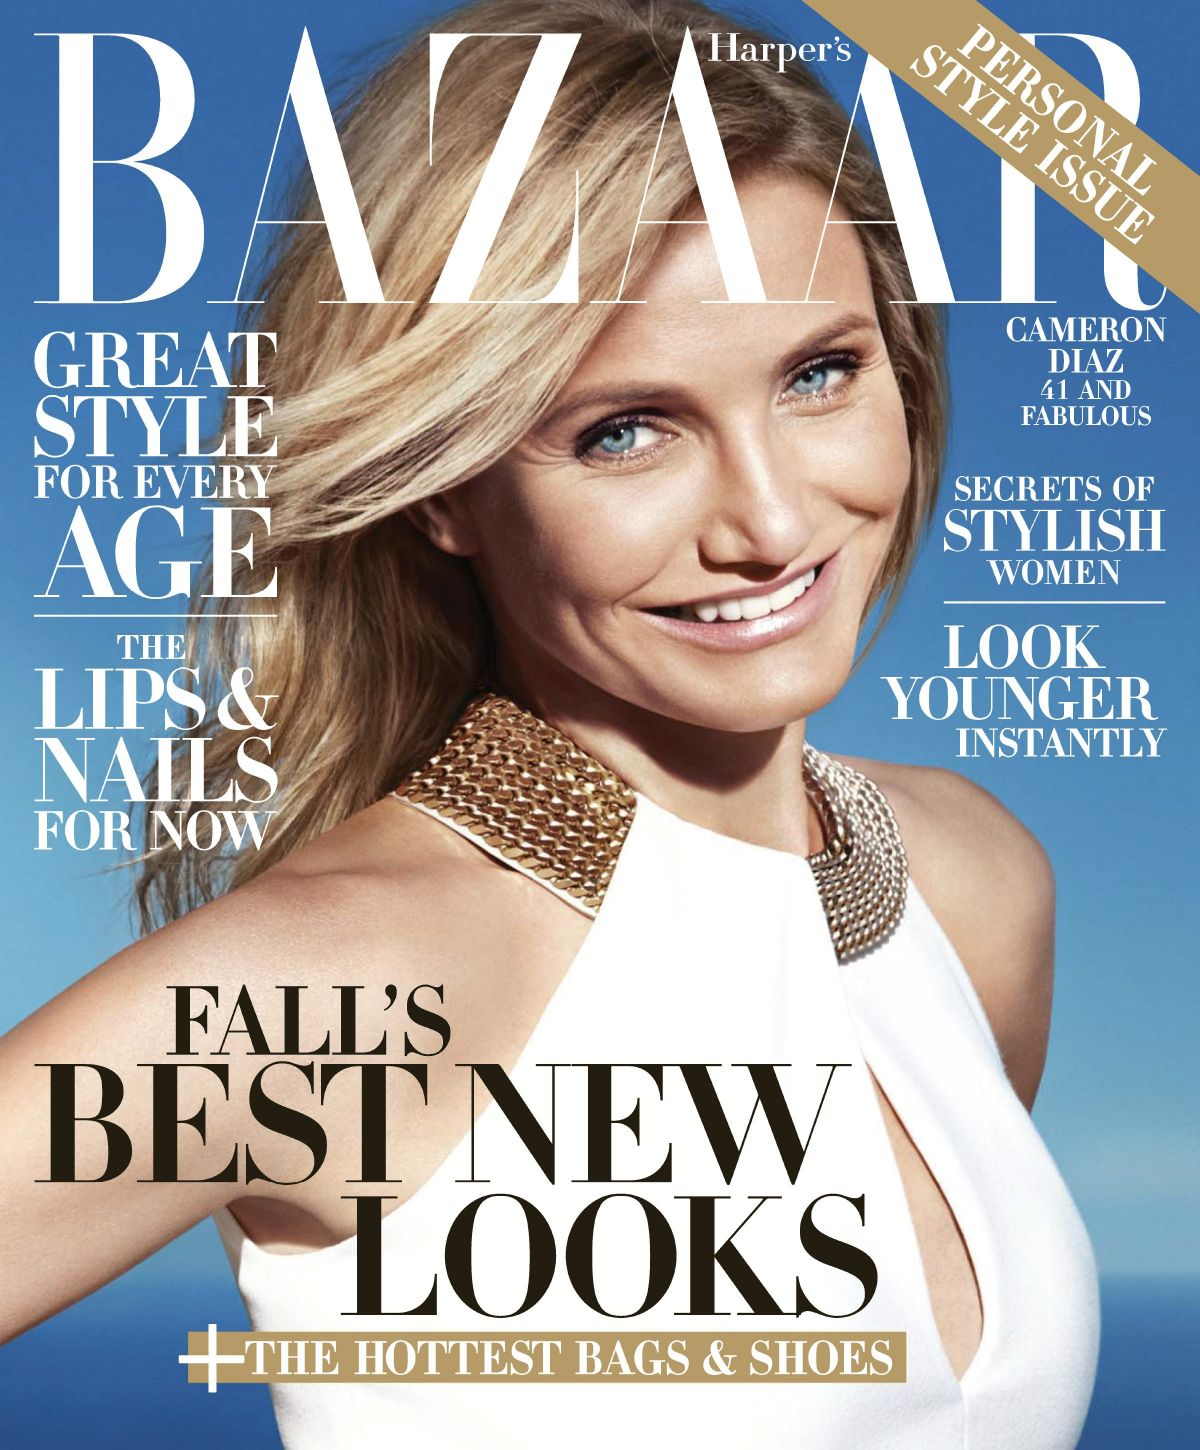 CAMERON DIAZ on the Cover of Harper